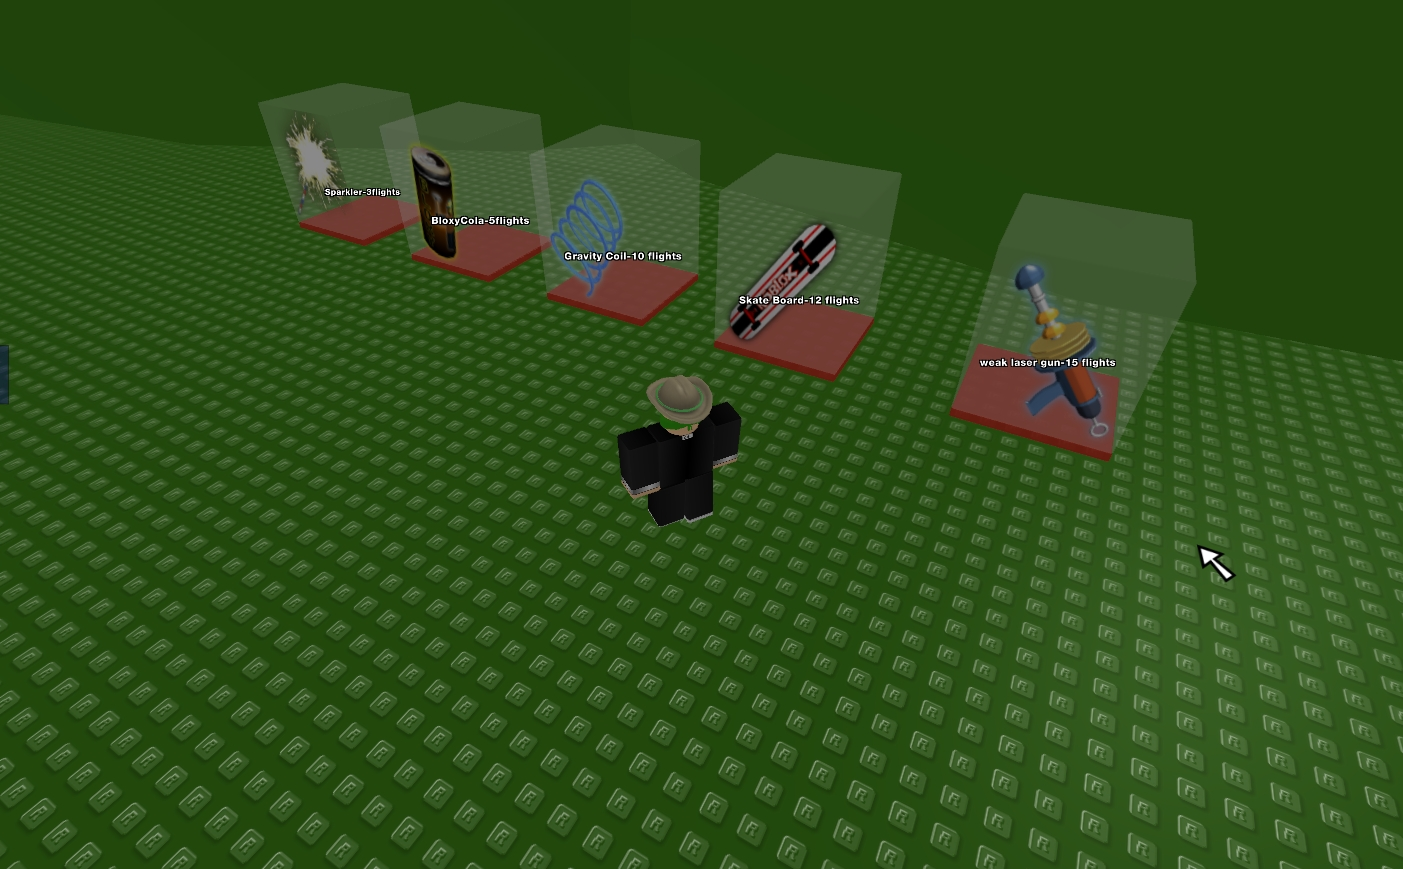 Another Way To Do The Hang Glider Skateboard Glitch In Robloxian - Roblox News July 2012